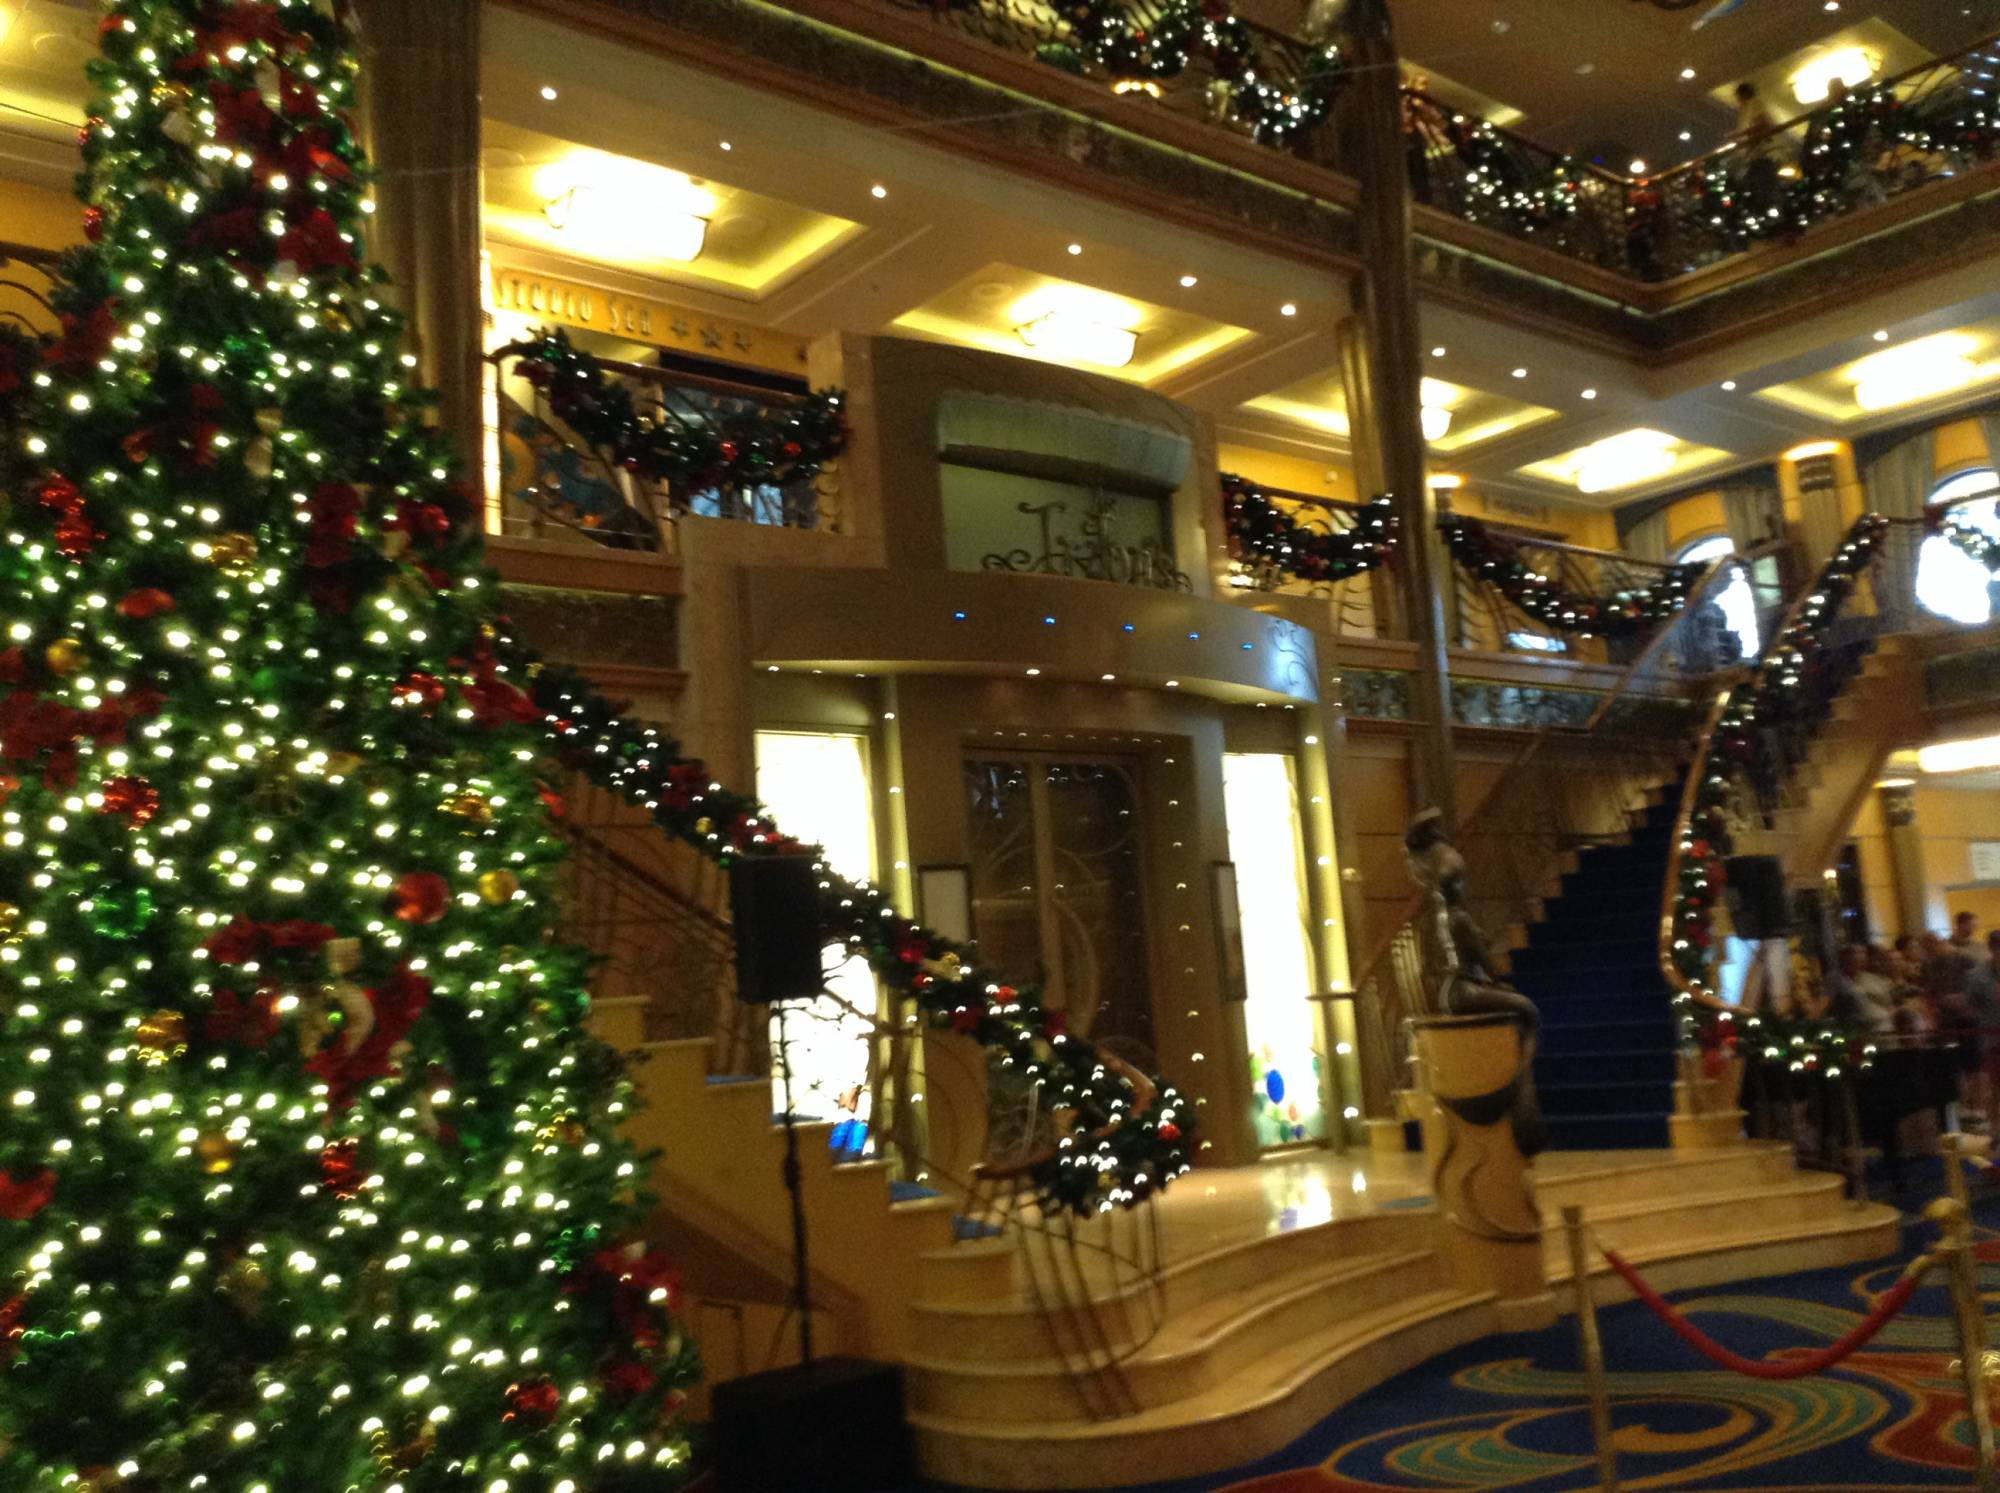 enjoy a very merrytime cruise at the holidays onboard the disney cruise line